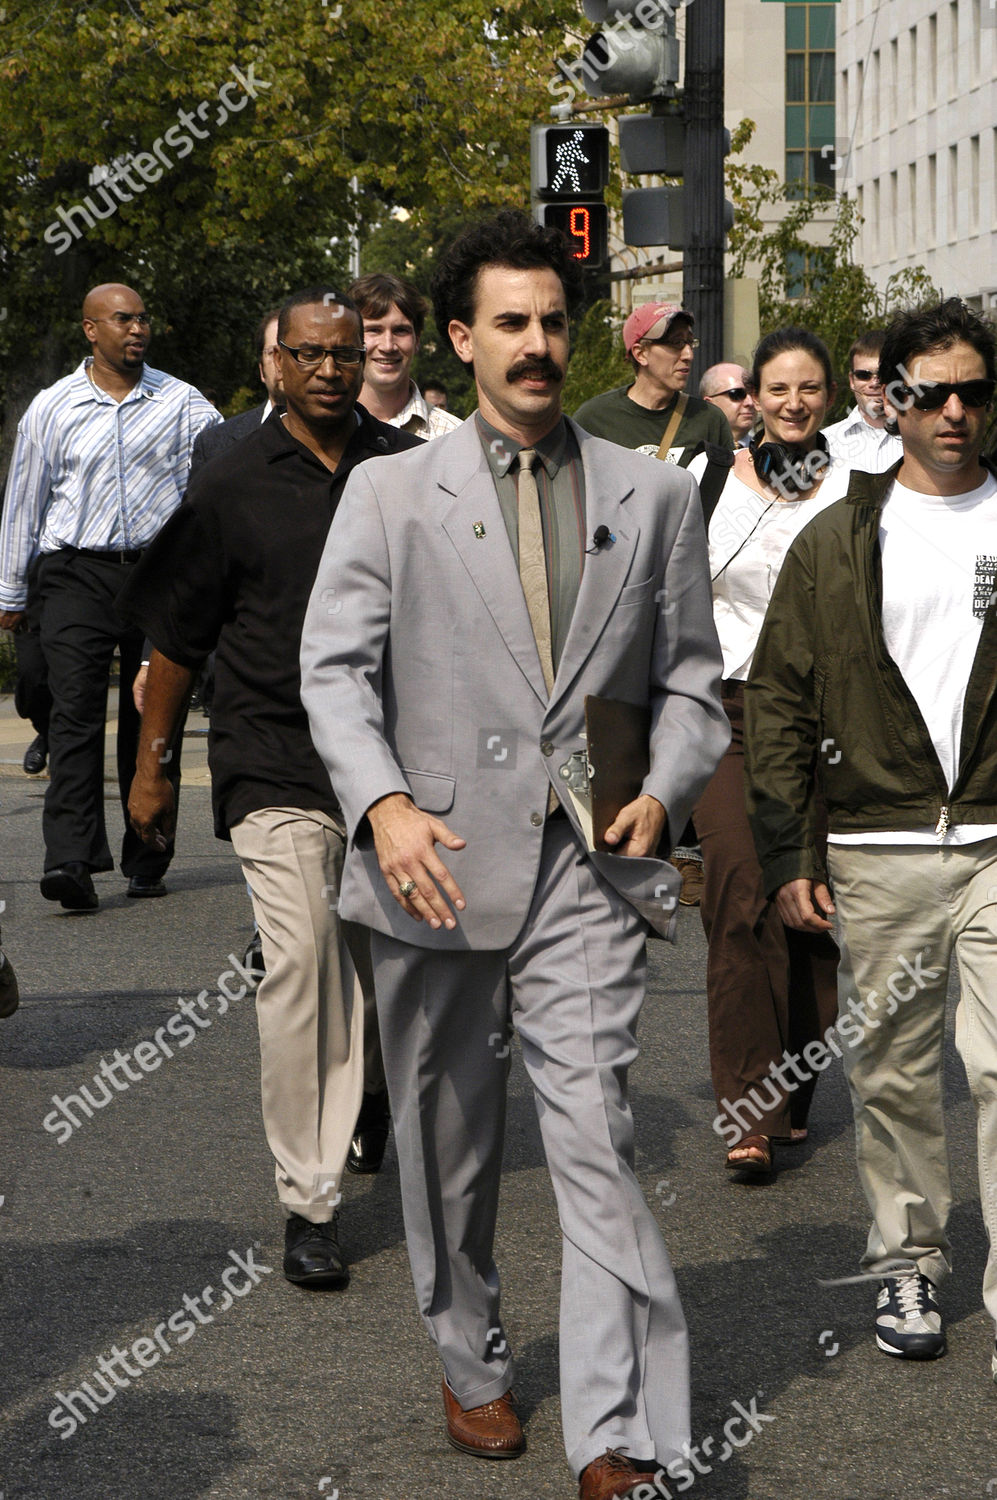 29f1871c348 Sacha Baron Cohen promoting his new film 'Borat: Cultural Learnings of  America for Make